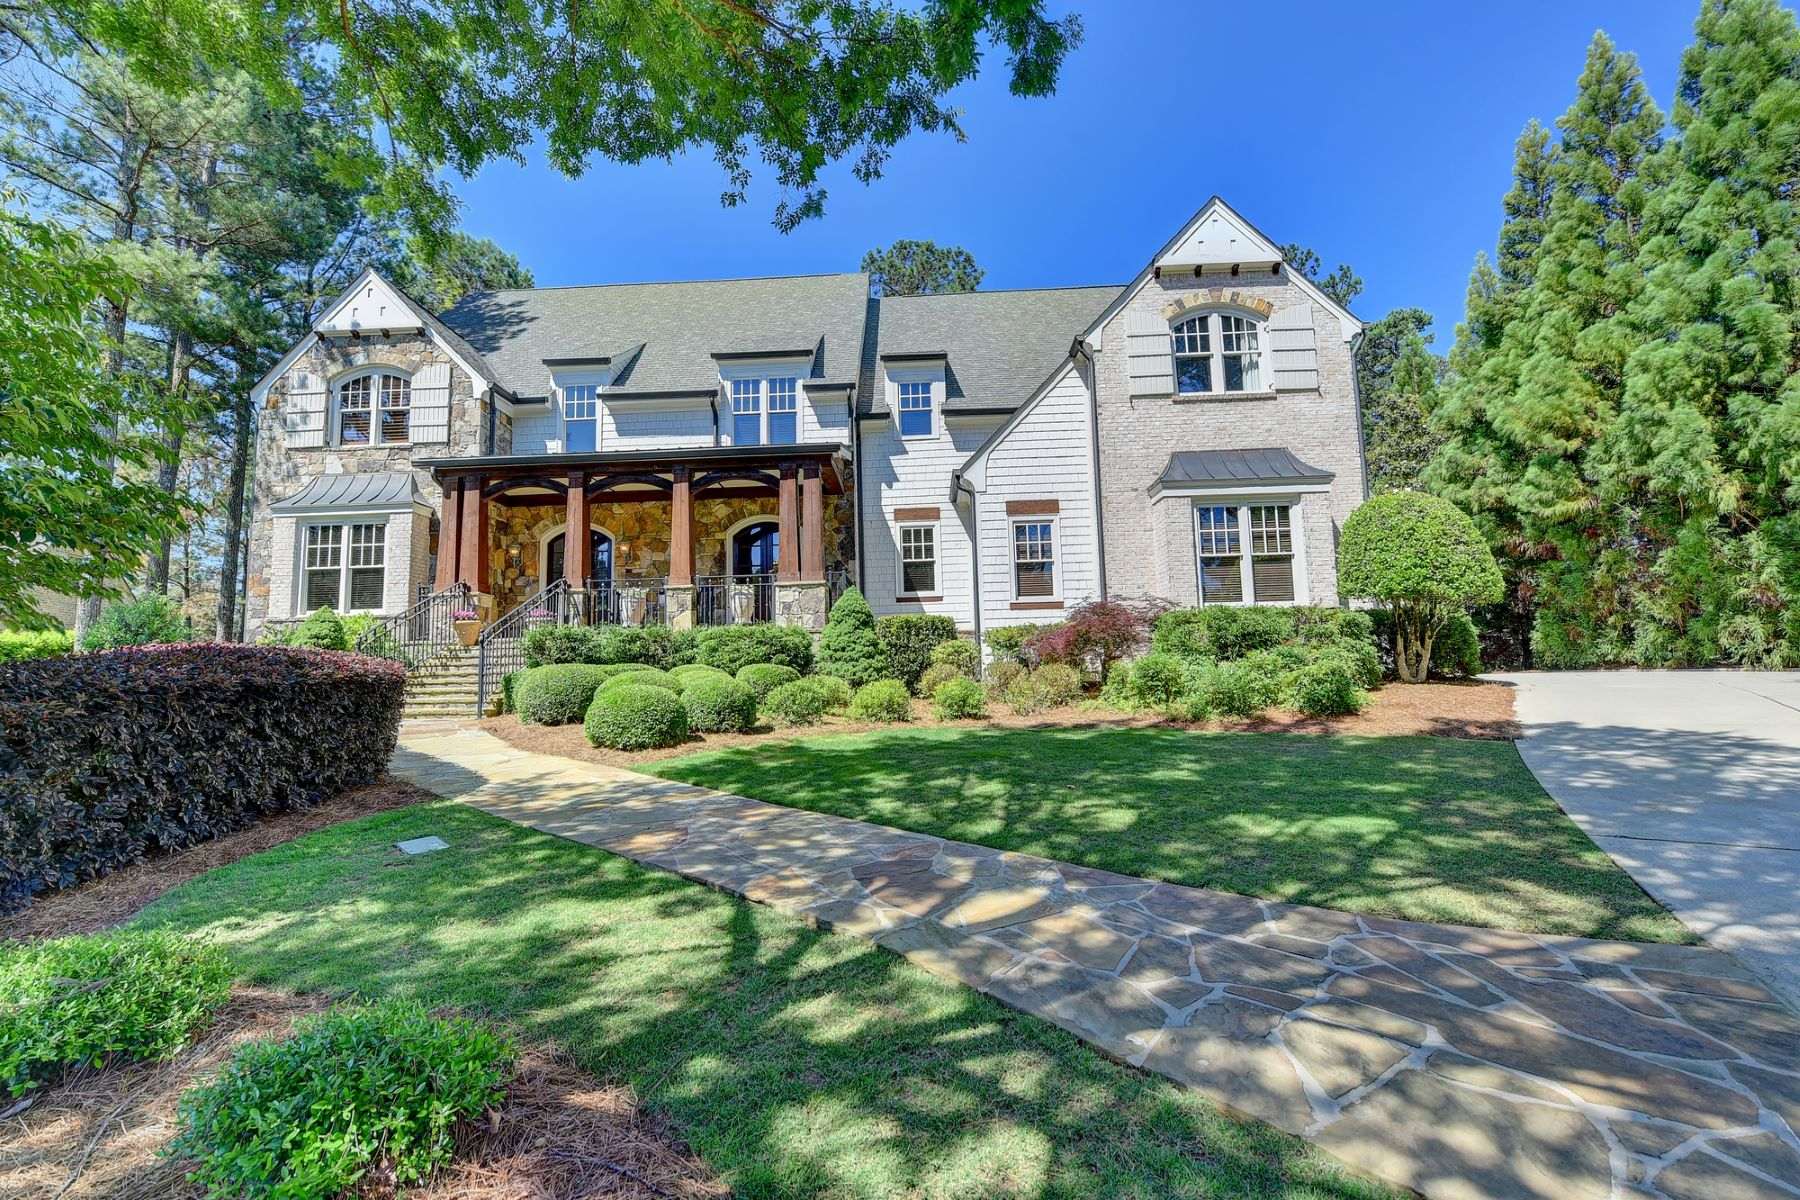 Single Family Homes for Sale at Stunning Craftsman Style Home In River Club 908 Middle Fork Trail Suwanee, Georgia 30024 United States